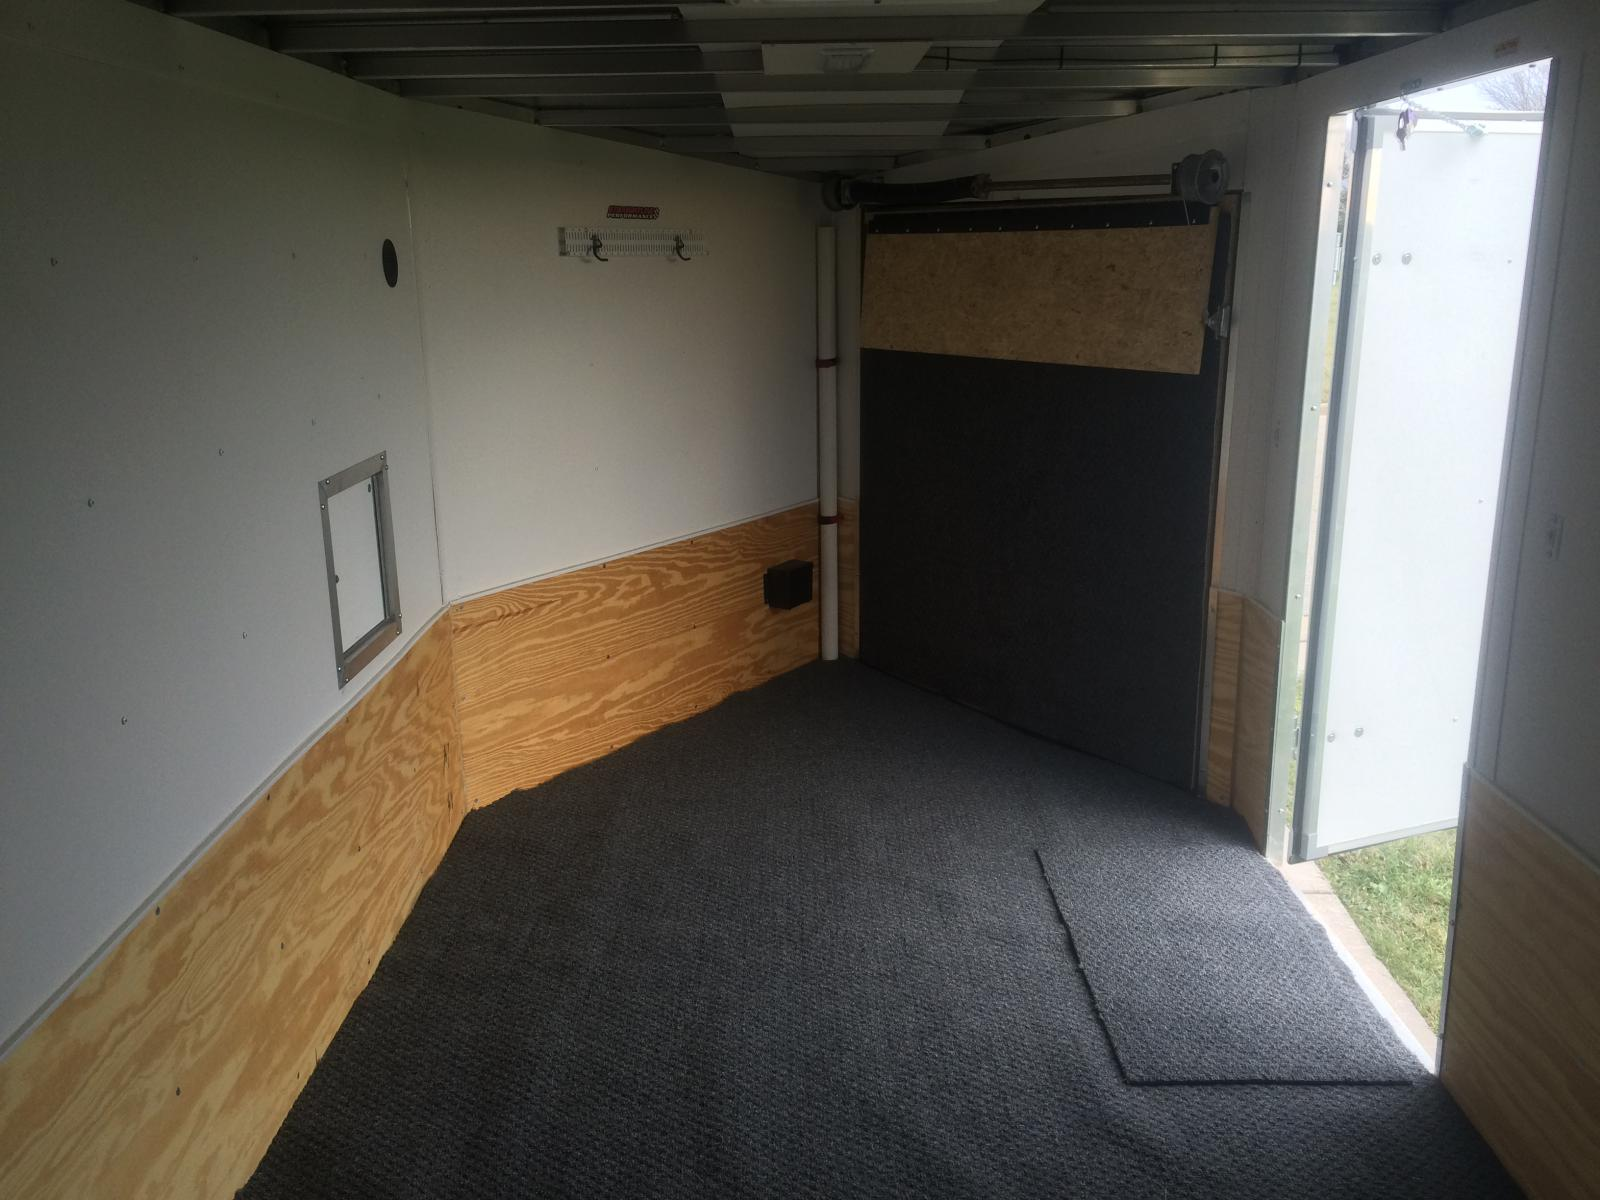 Trailer Flooring Hcs Snowmobile Forums